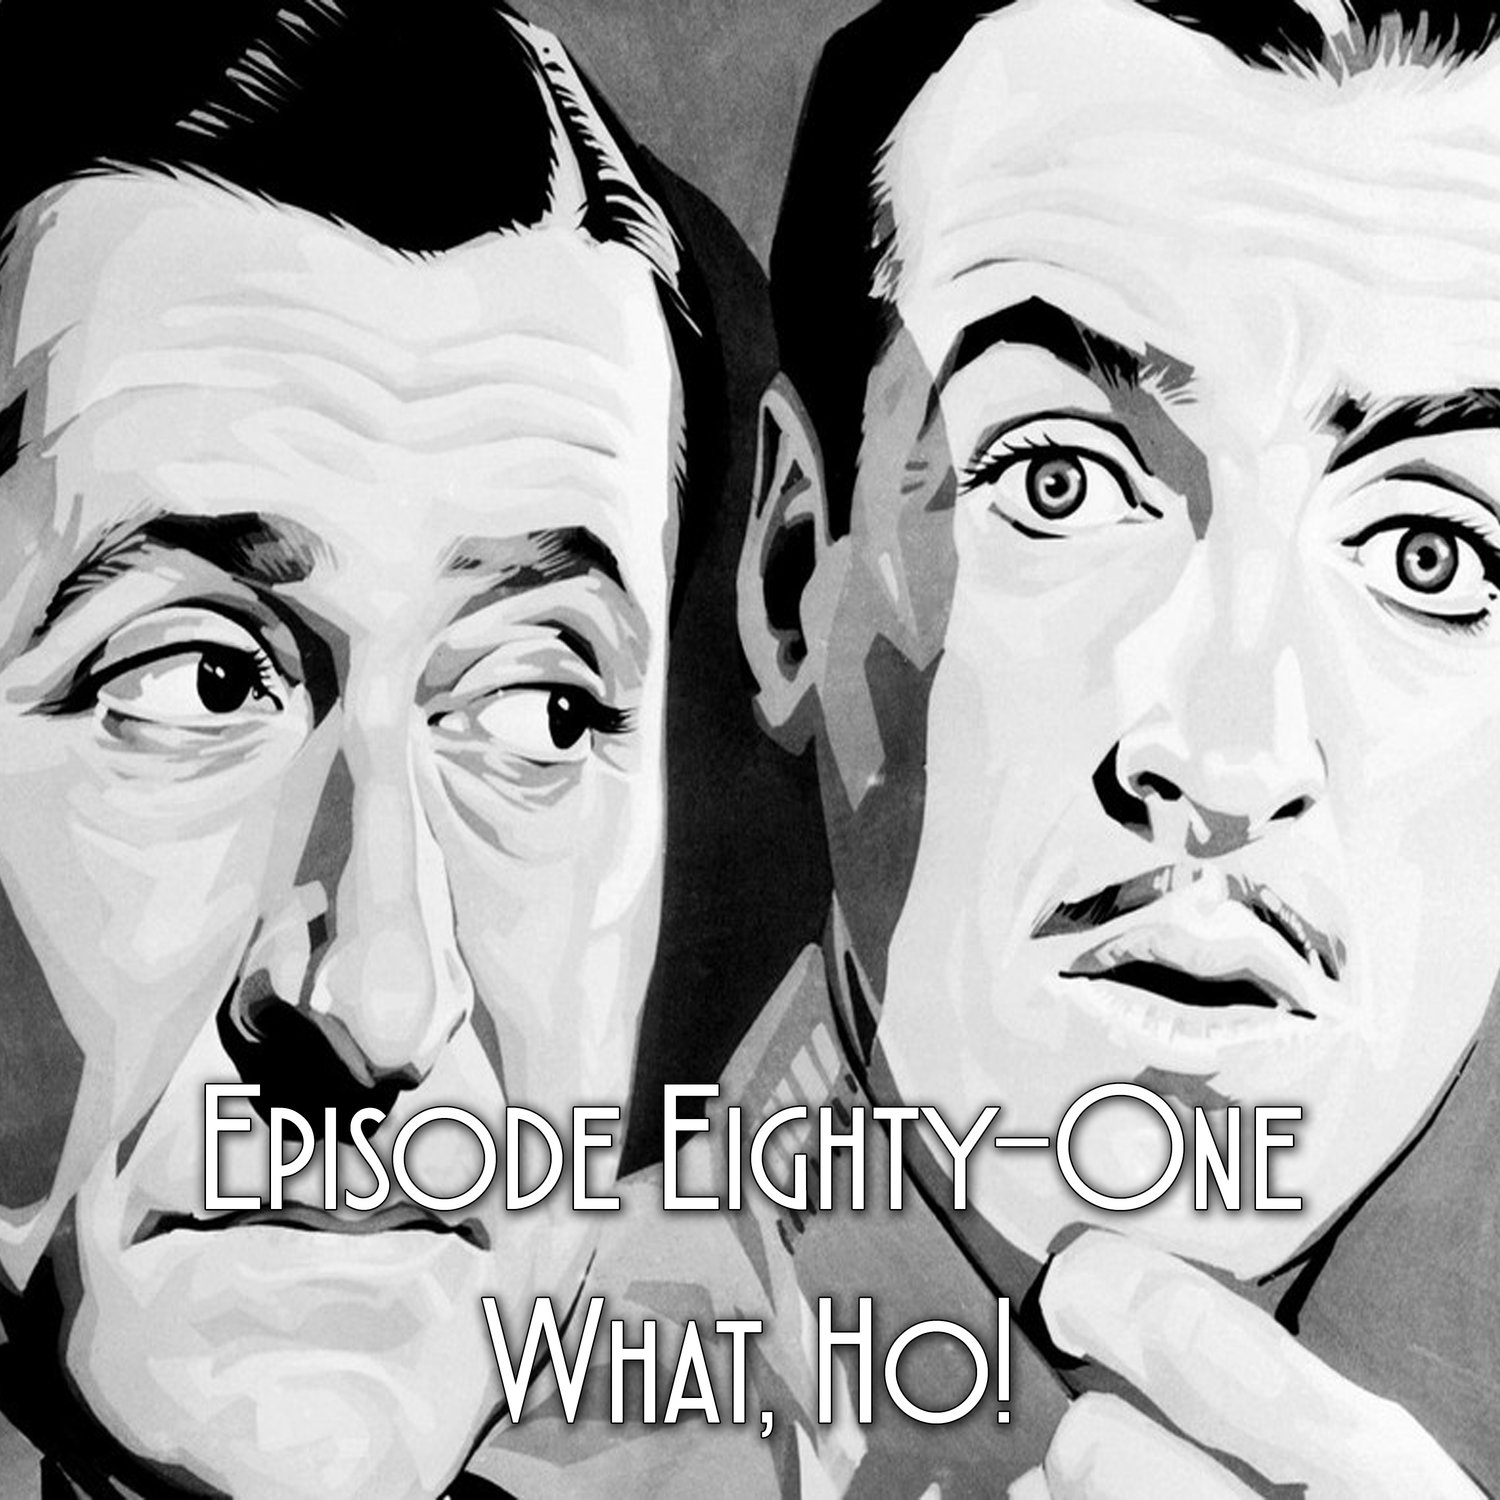 Episode 81: What, Ho!